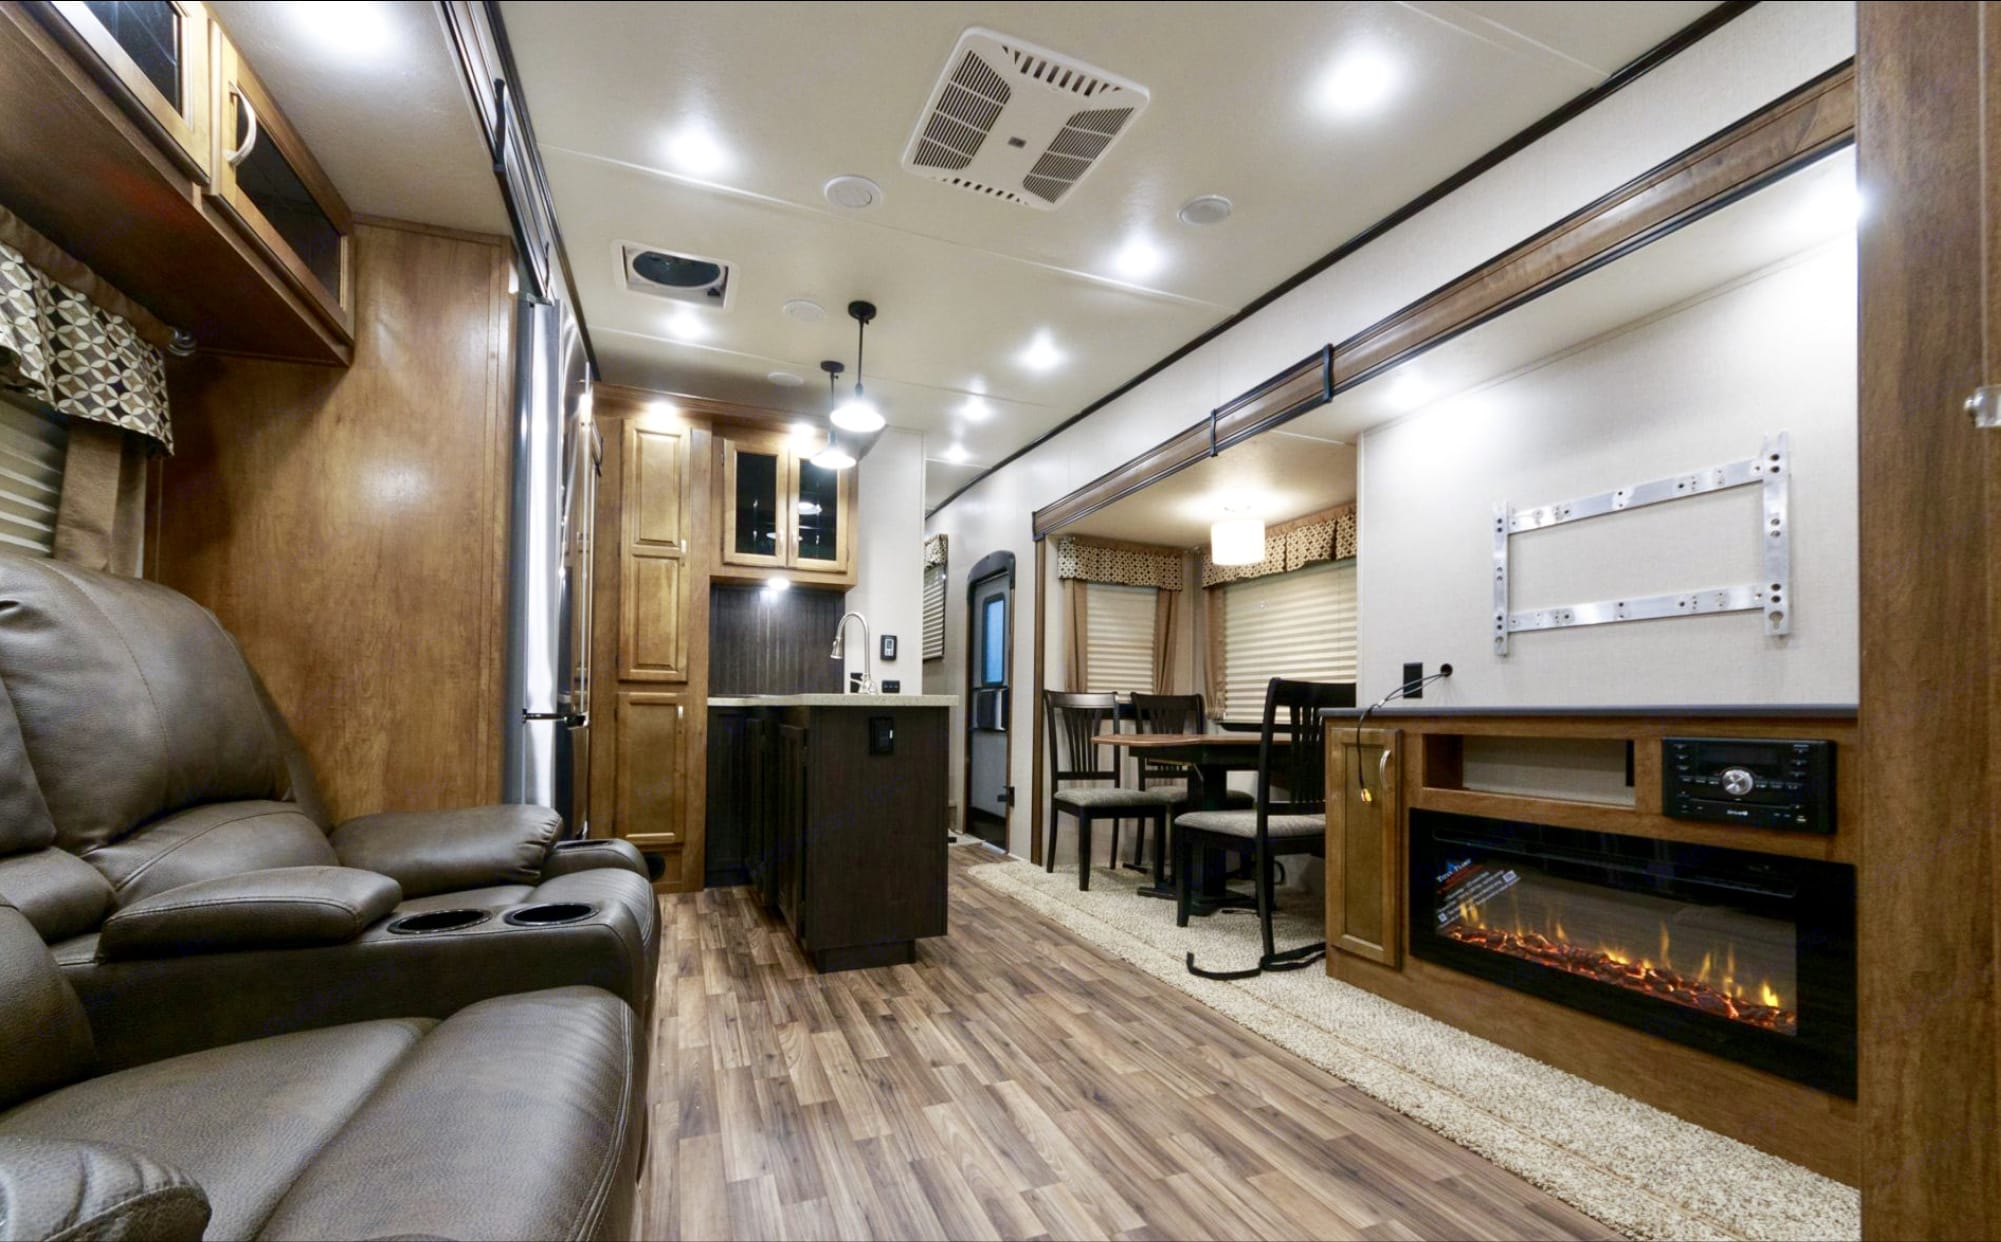 2019 Coachmen Chaparral 373mbrb Fifth Wheel Rental In Long Beach Ca Outdoorsy